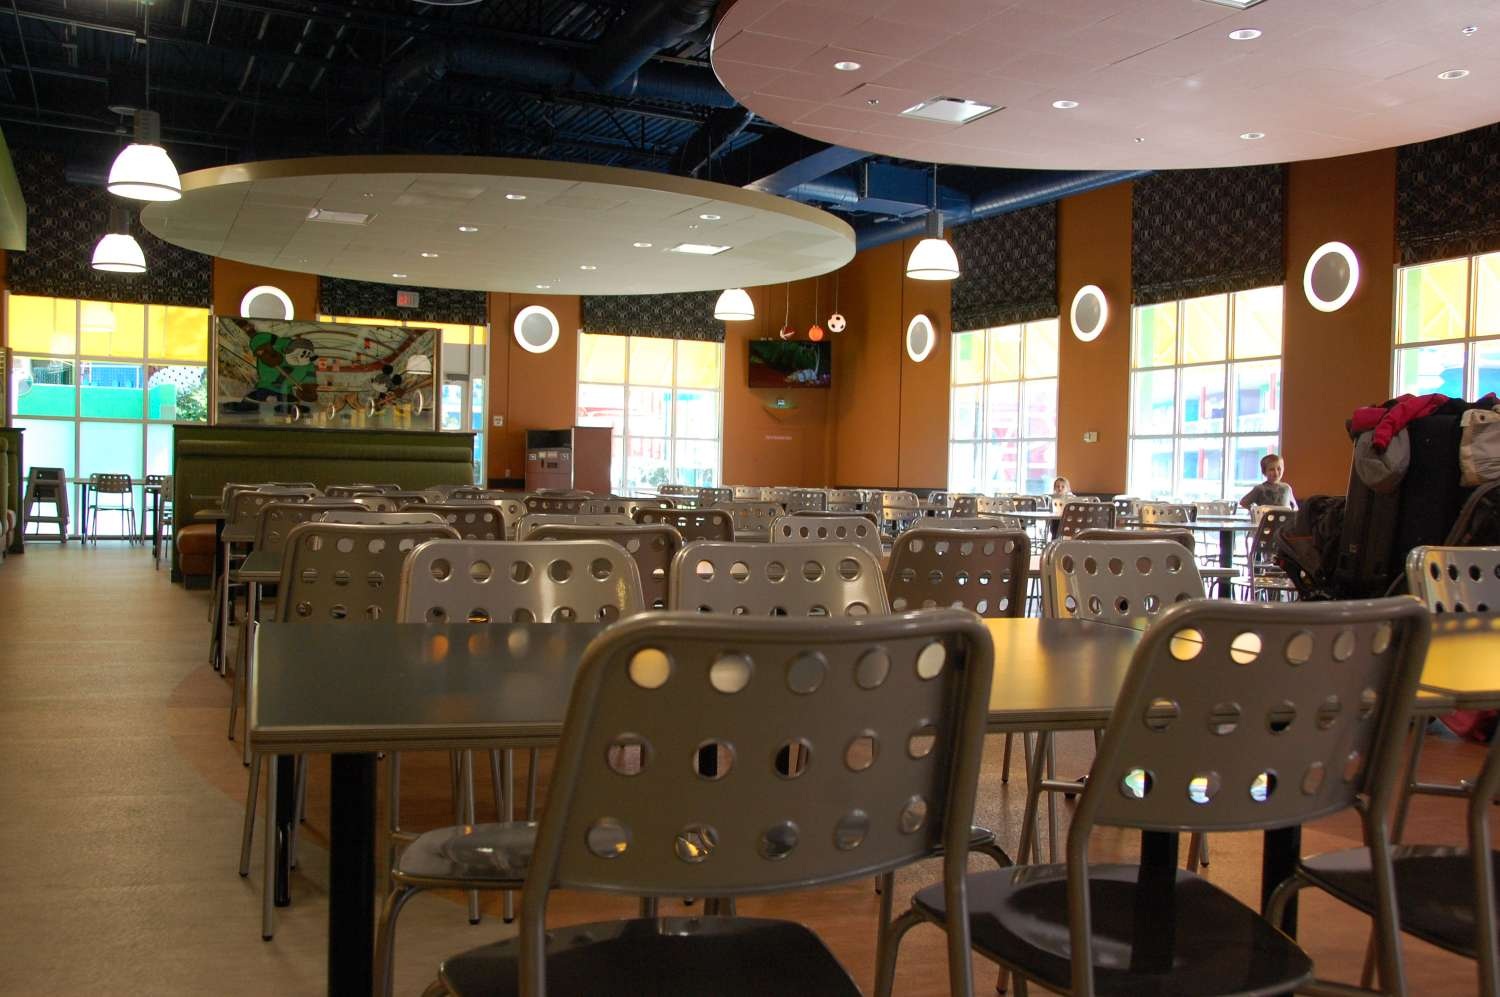 Disney's-All-Star-Sports-End-Zone-Food-Court-Seating (2).JPG